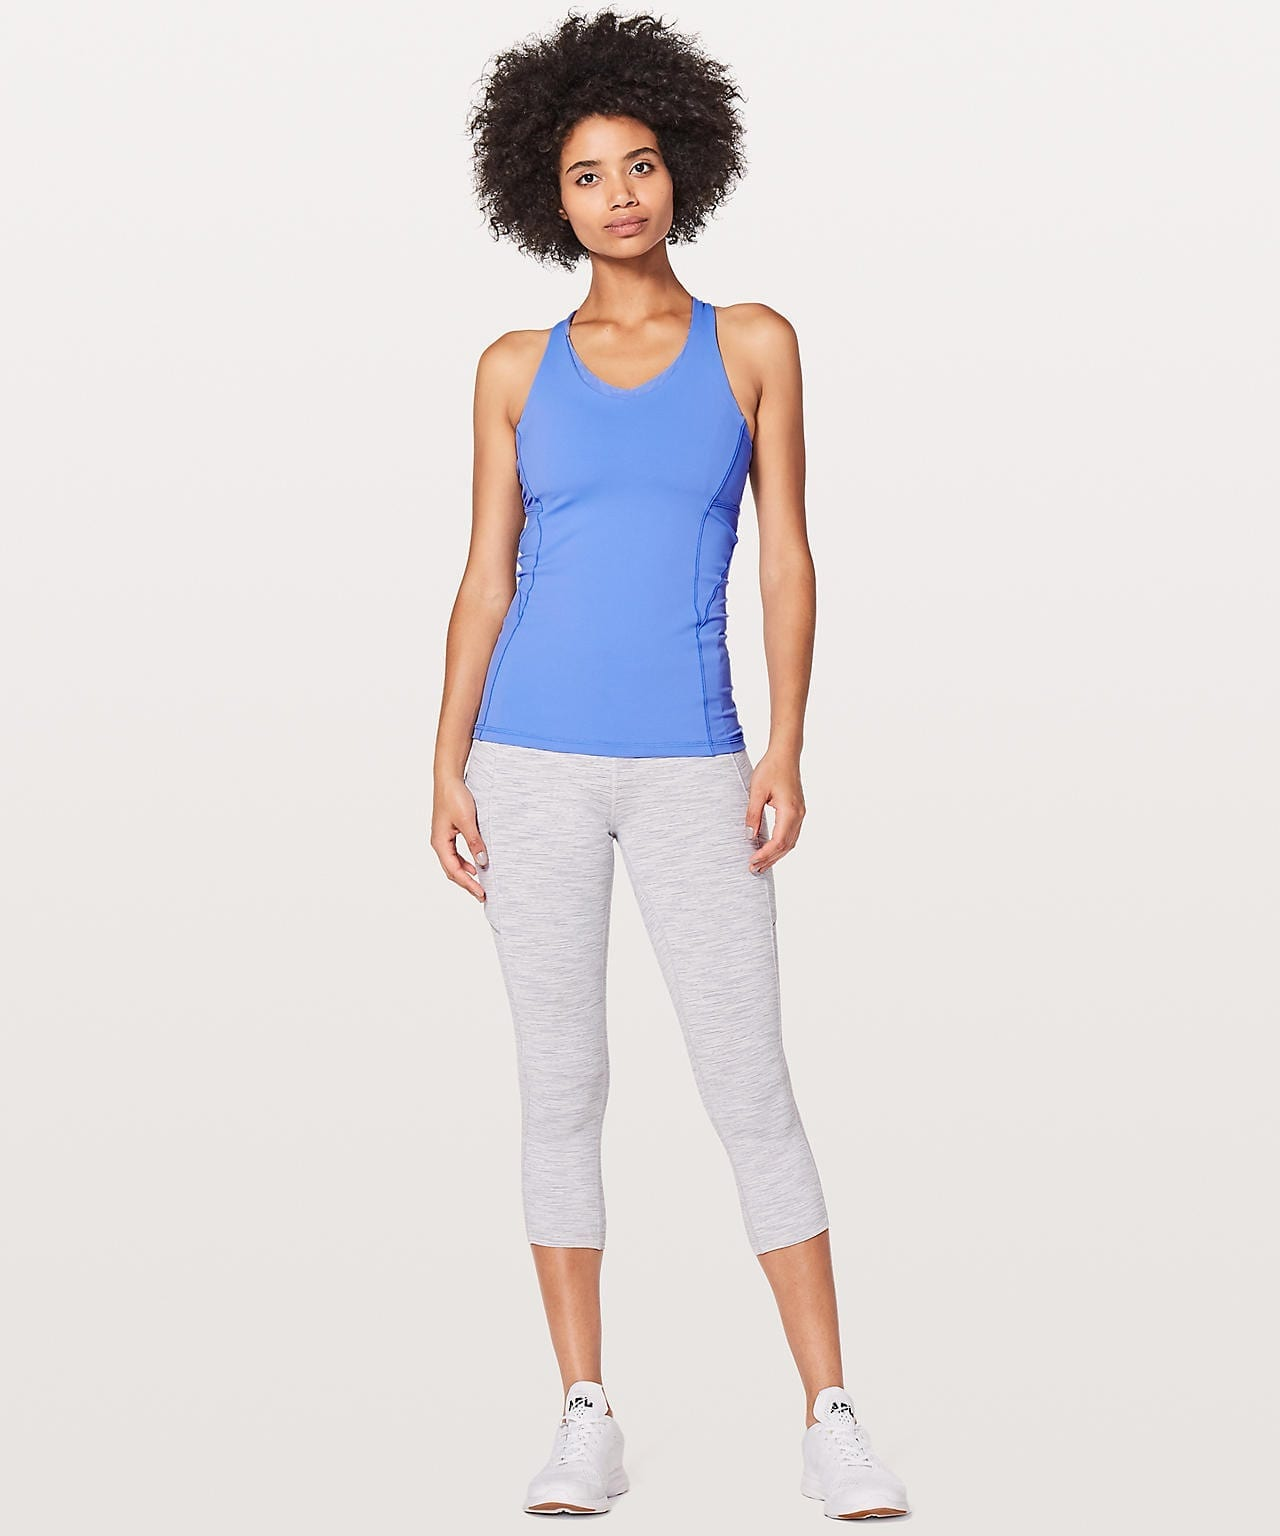 Lululemon Stash N' Run Tank, Lululemon New Product